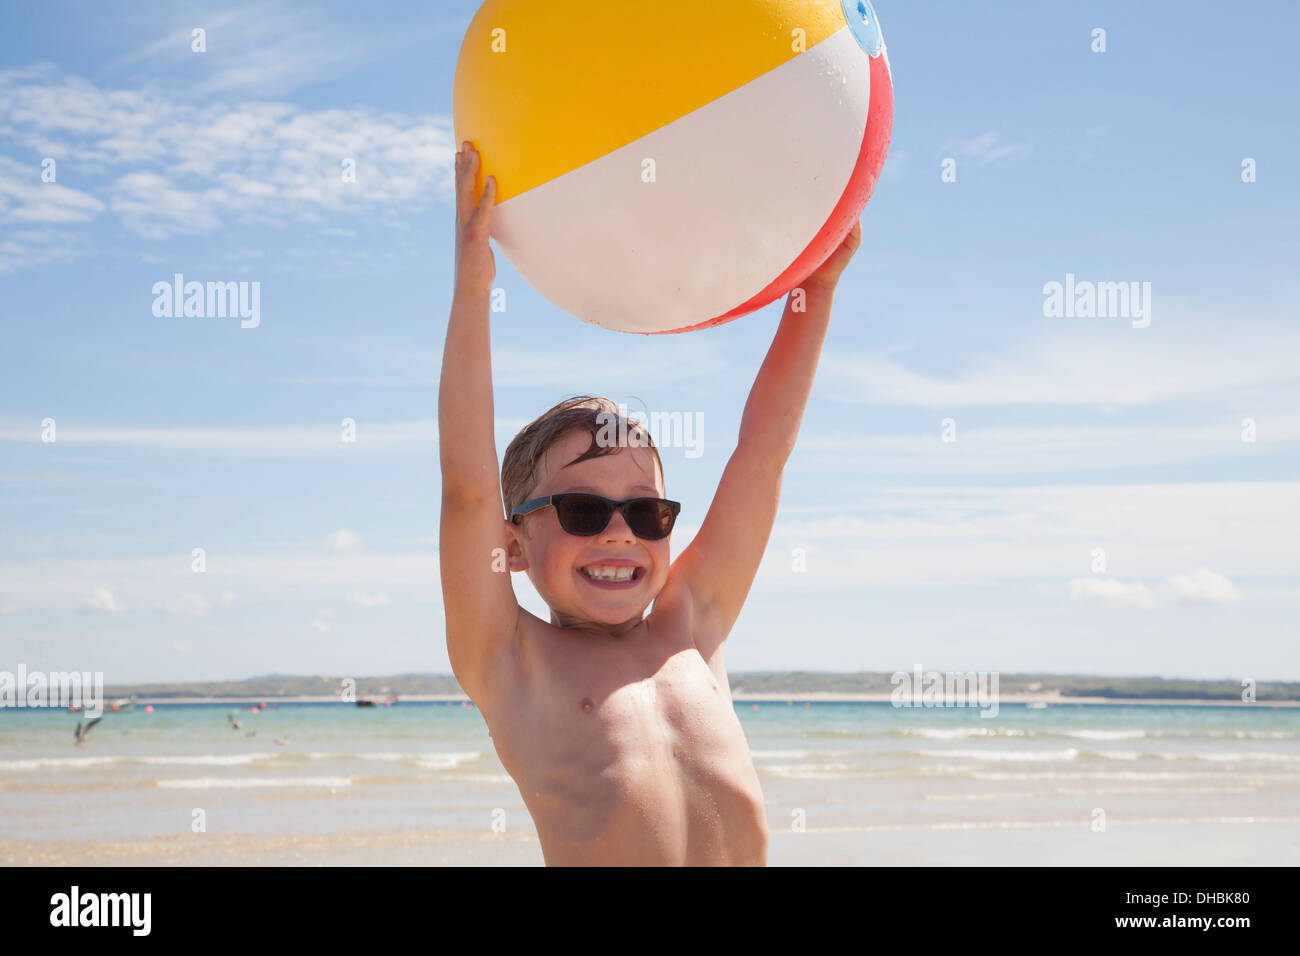 A boy wearing sunglasses on the beach. Holding an inflatable beach ball above his head. - Stock Image